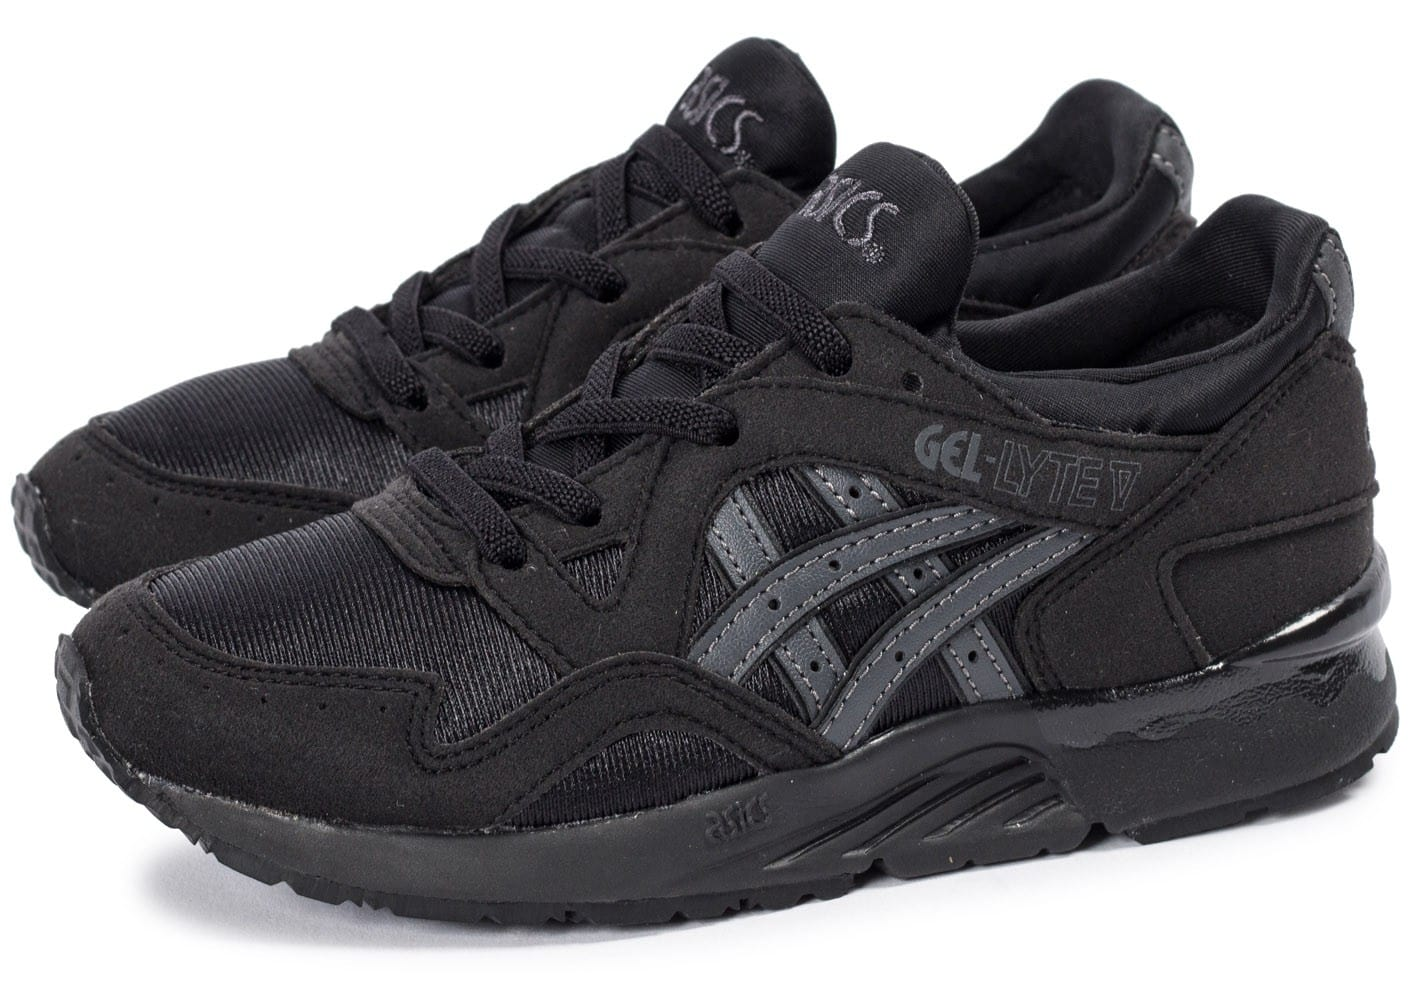 5a768227f393 Asics Gel Lyte V Enfant noire - Chaussures Chaussures - Chausport